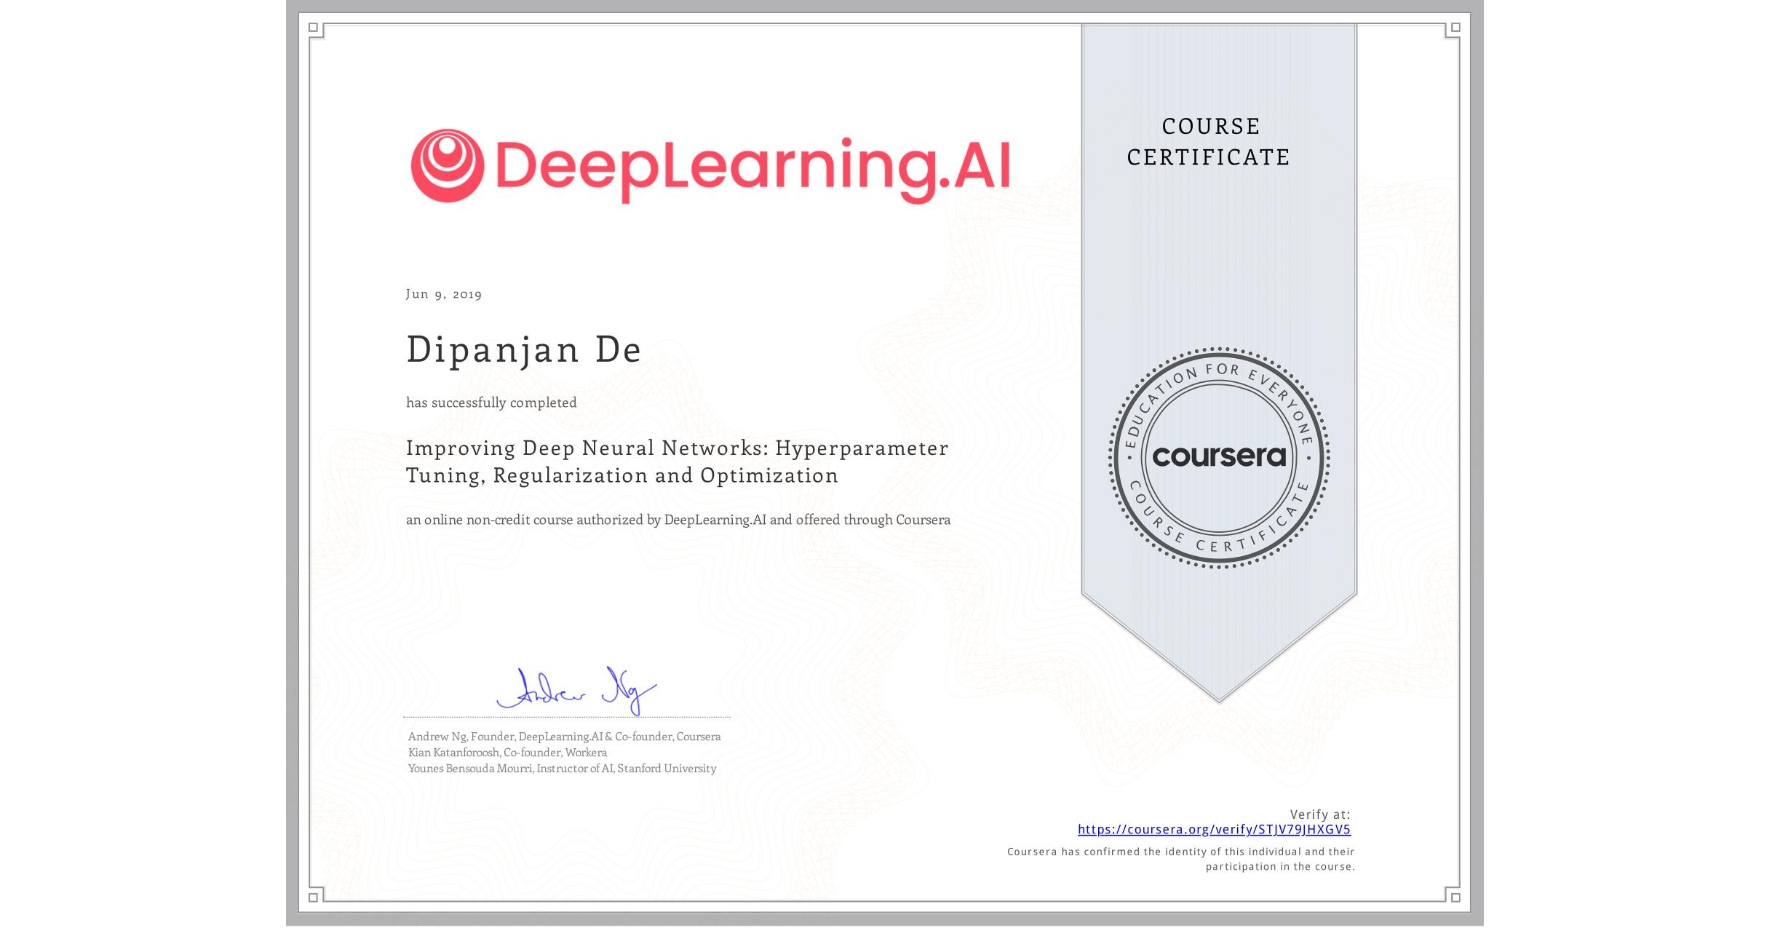 View certificate for Dipanjan De, Improving Deep Neural Networks: Hyperparameter tuning, Regularization and Optimization, an online non-credit course authorized by DeepLearning.AI and offered through Coursera